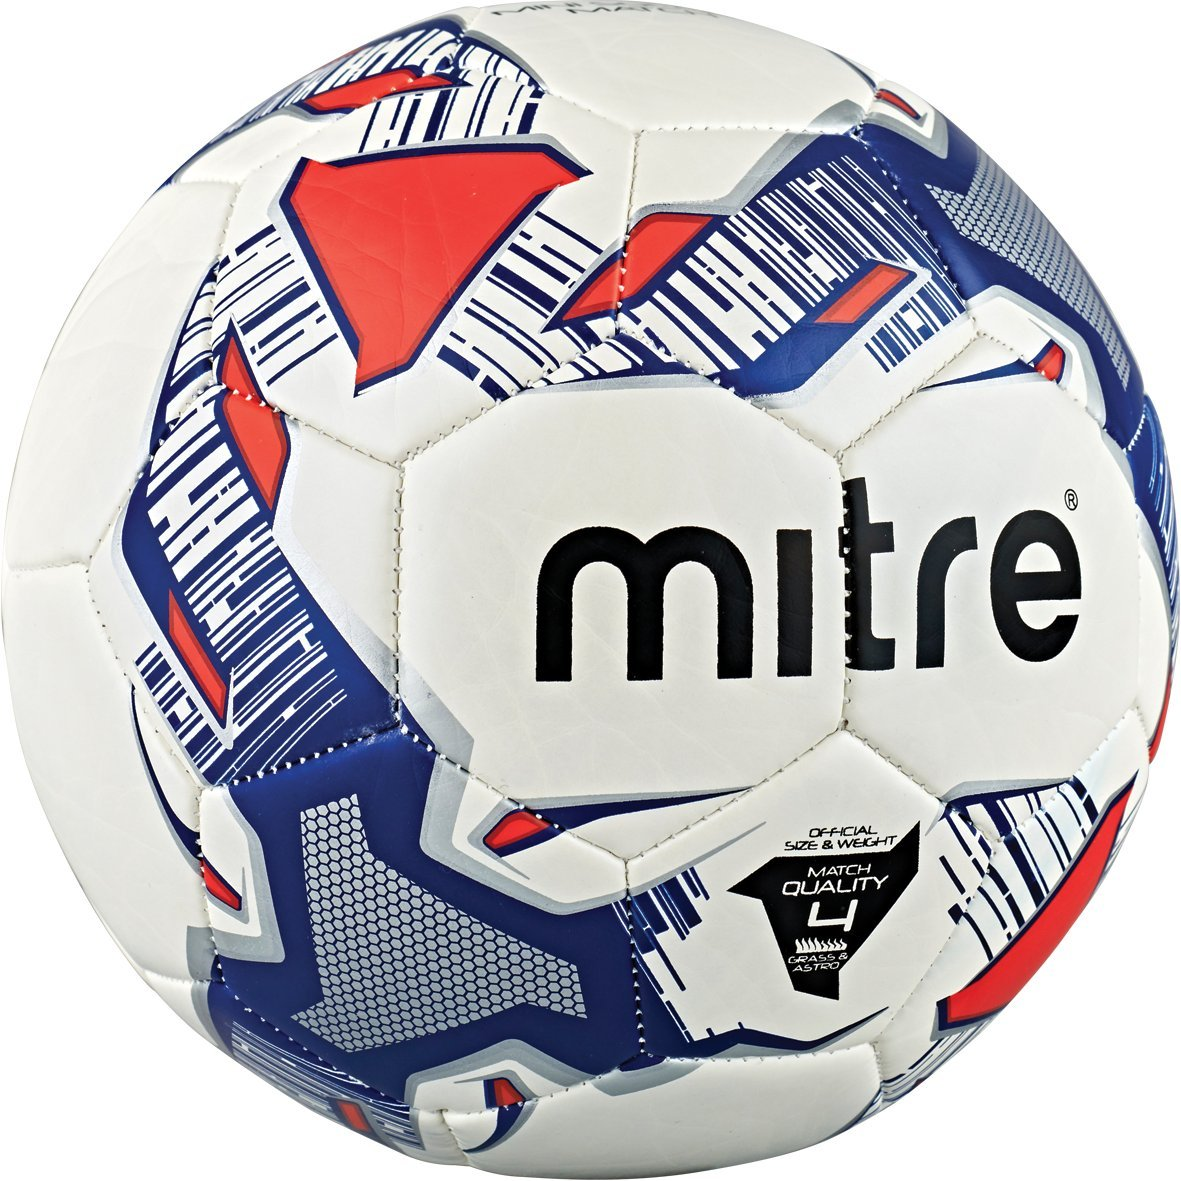 Mitre Mini Soccer Match Football - White/Blue/Silver, Size 3 ...